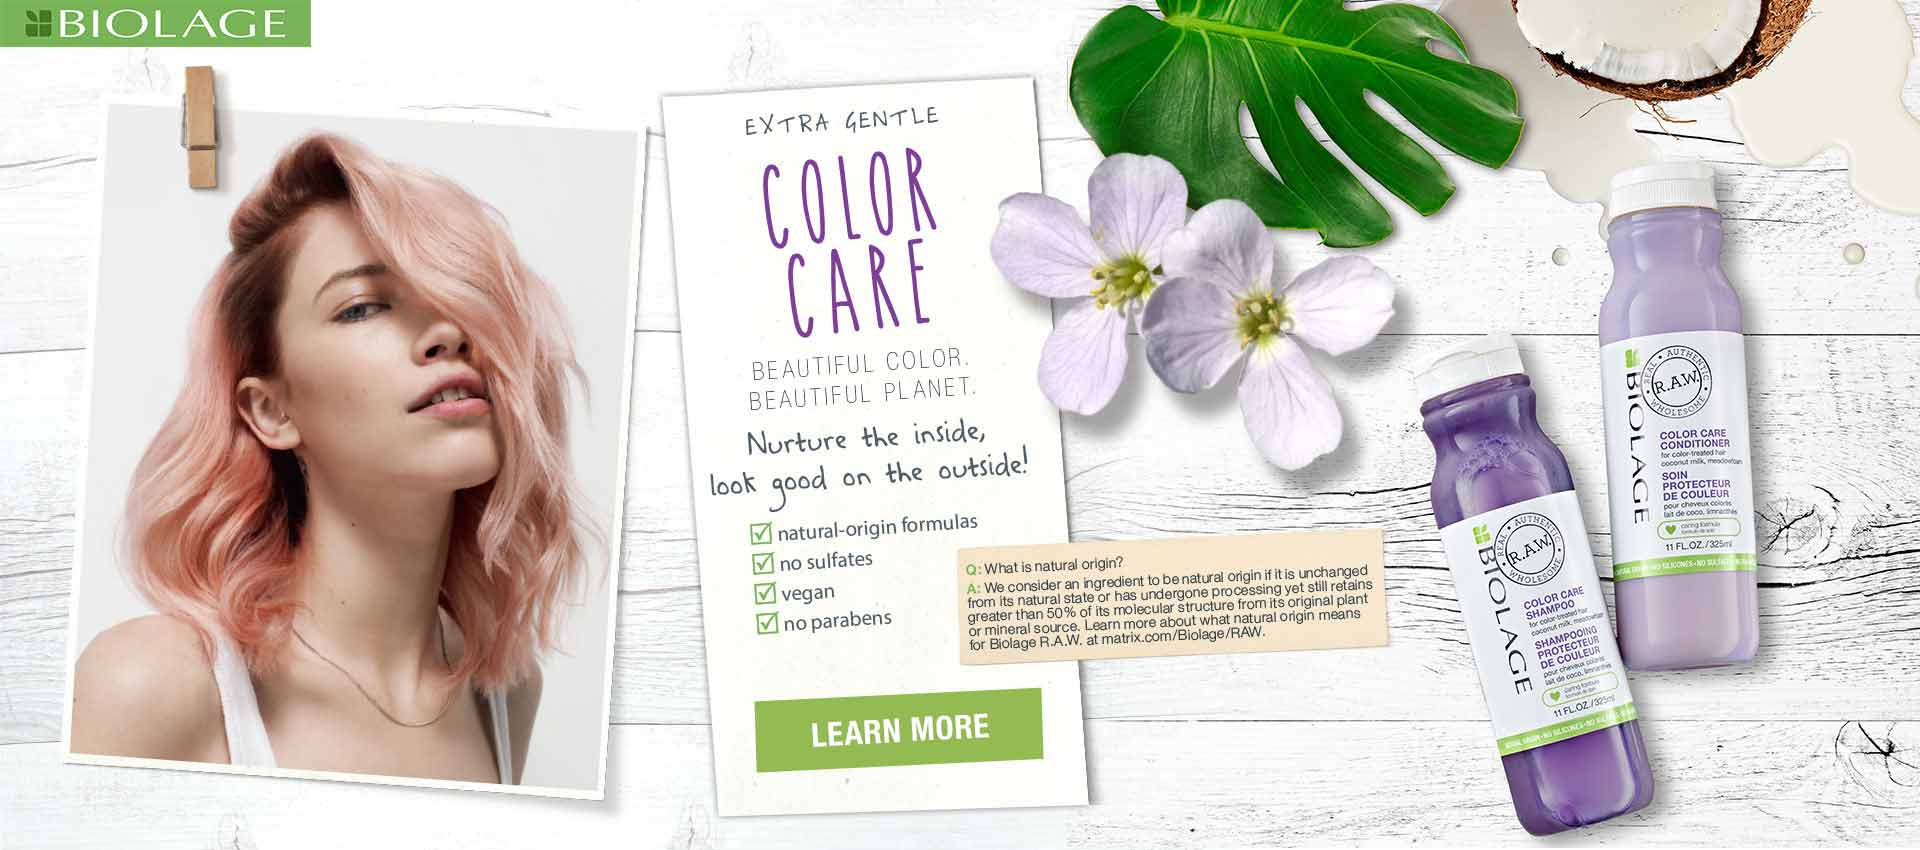 Biolage RAW Color Care